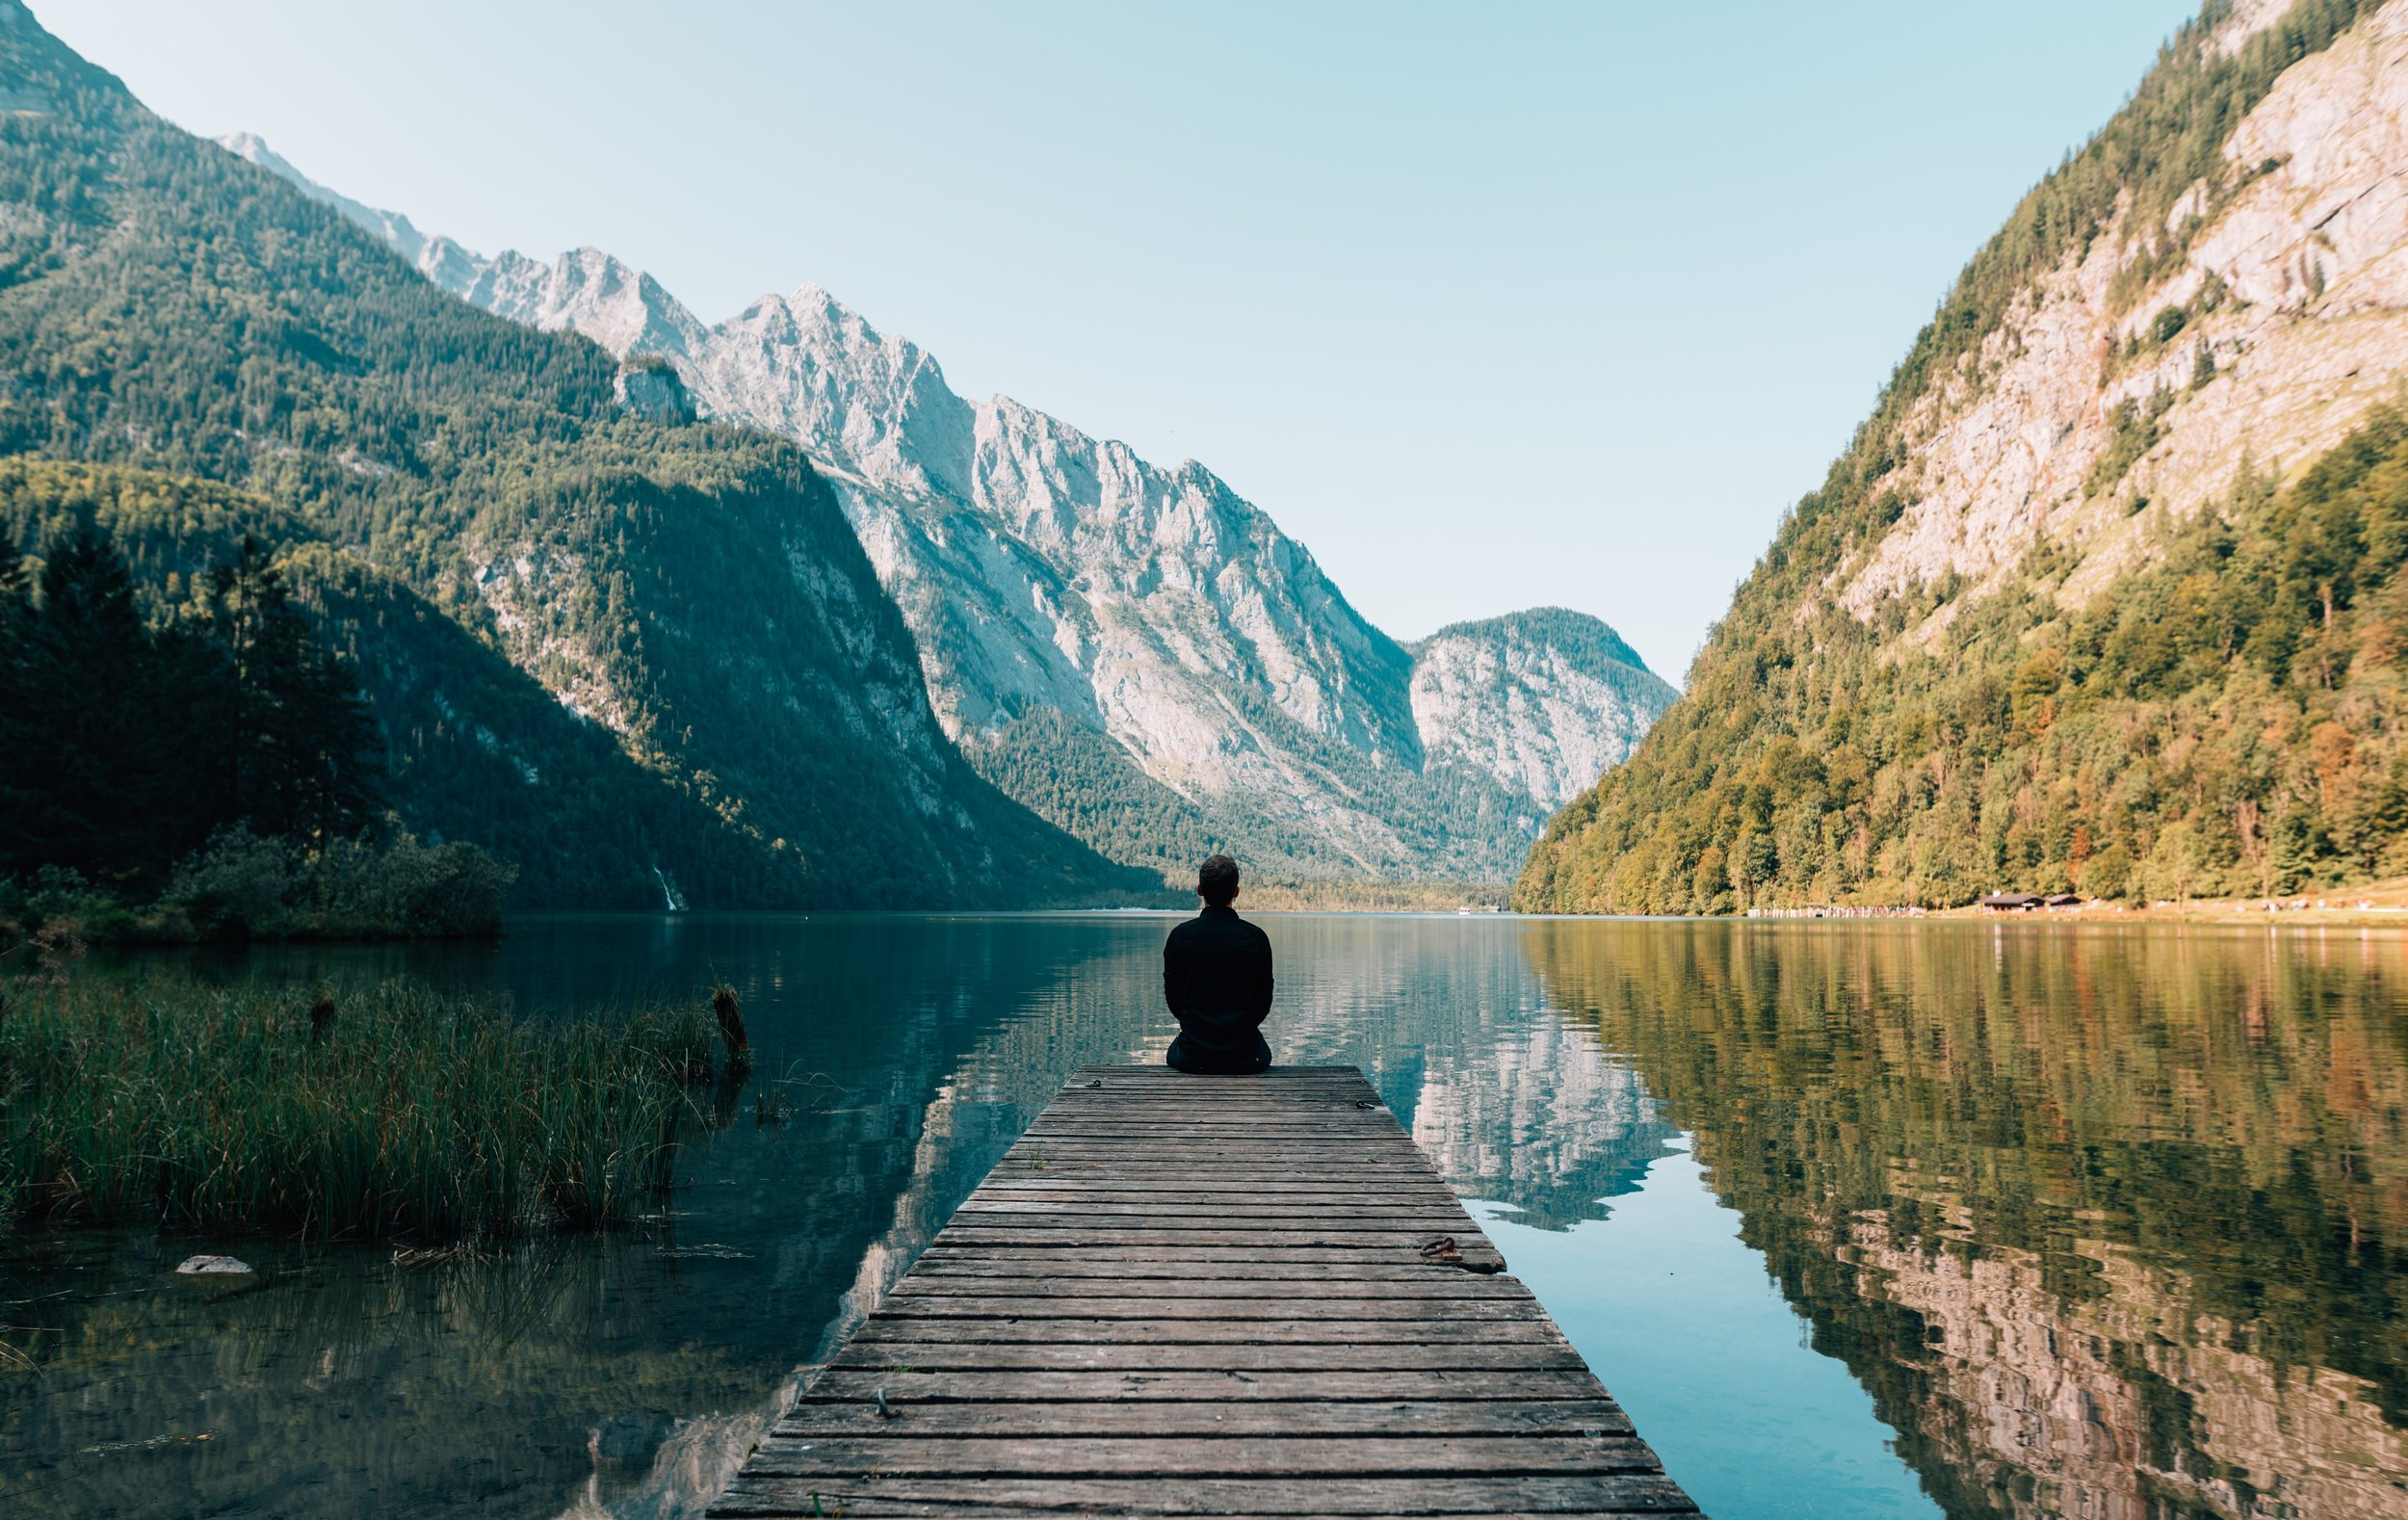 Person gazing out on a lake